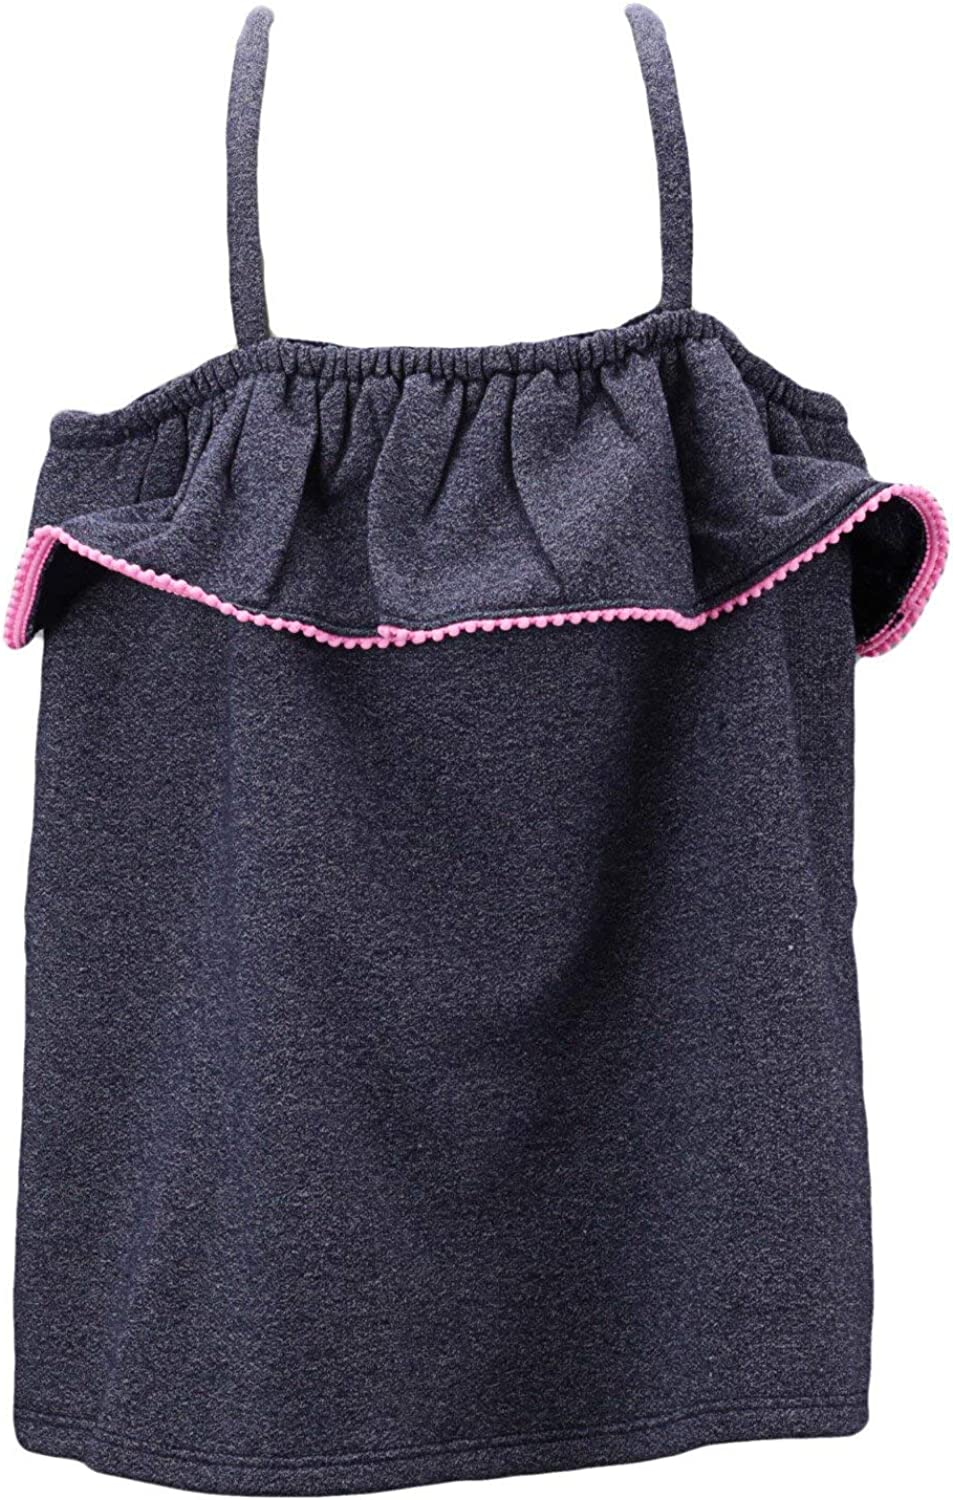 Janie and Jack Girl's Blue Ruffle Pom-Pom Max 58% OFF Max 40% OFF Trim Mo 3-6 - Top Tank